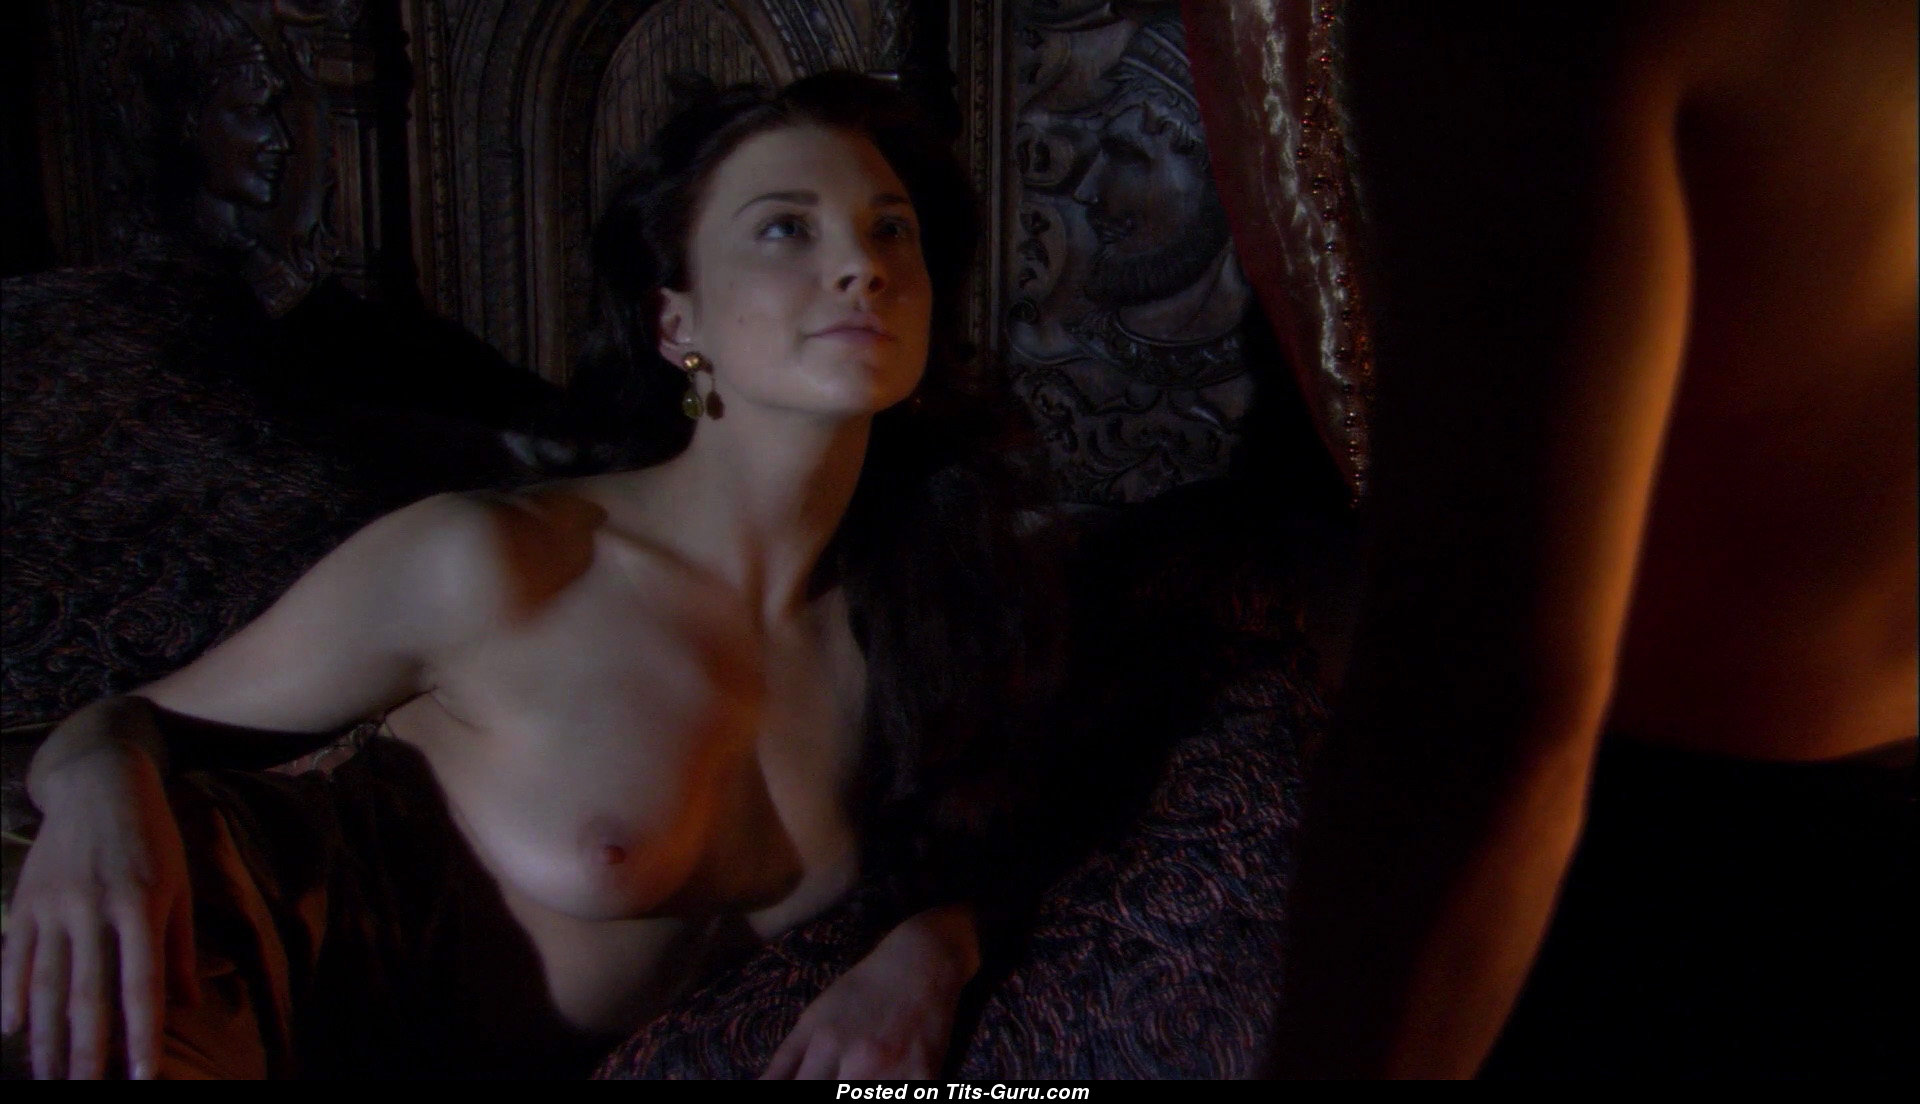 Natalie dormer nude boobs and tattooed body from in darkness movie